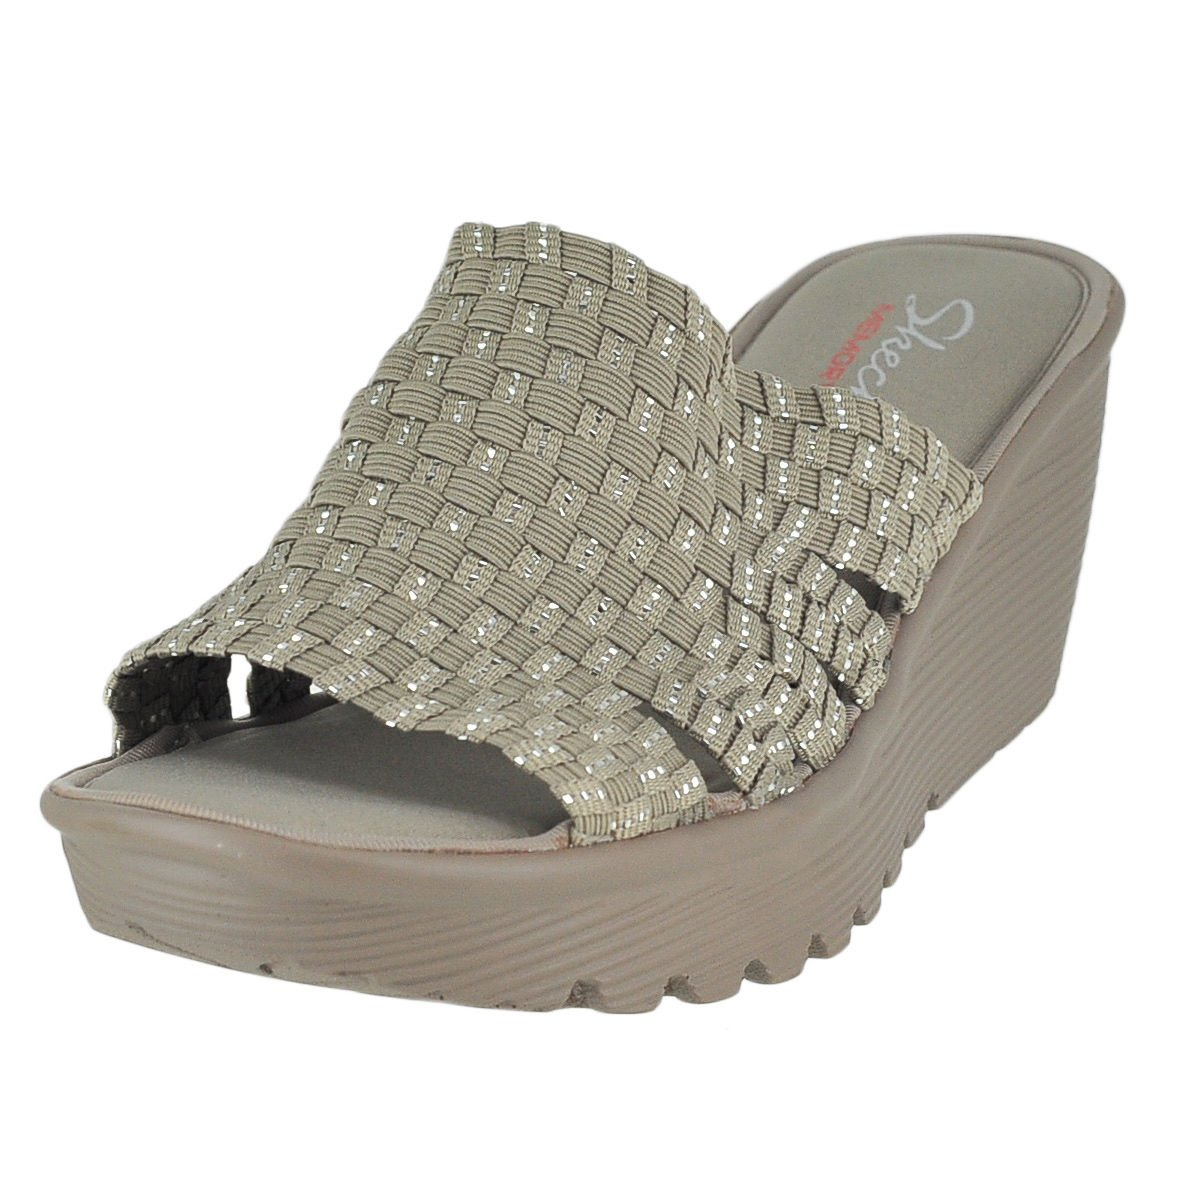 Skechers Cali Women's Parallel Wedge Sandal B0131IQOJI 10 B(M) US|Taupe Silver